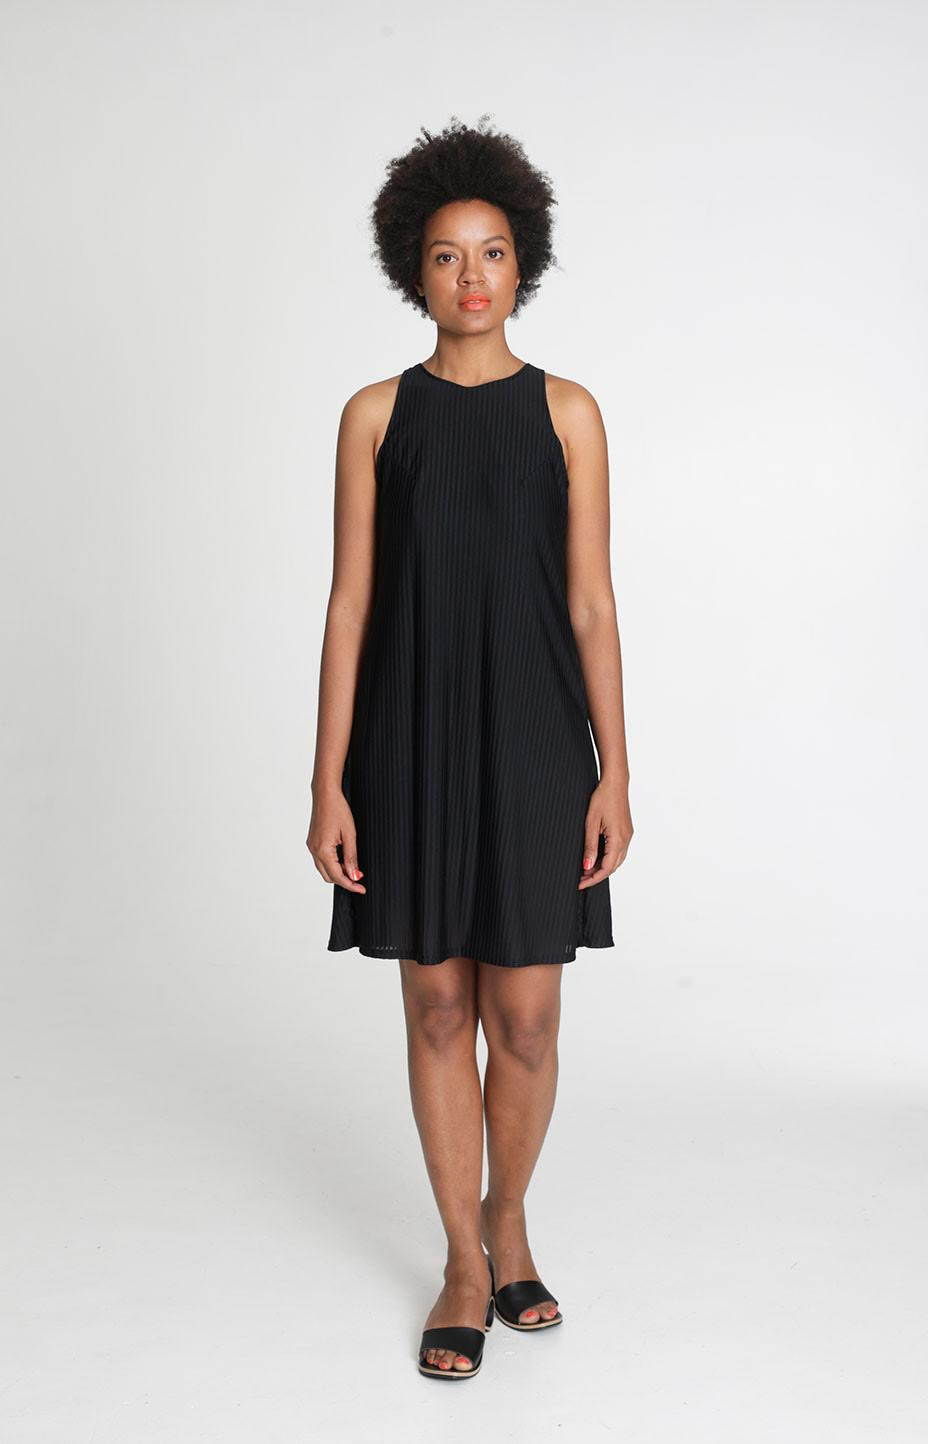 Tauko HOLIDAY dress, black